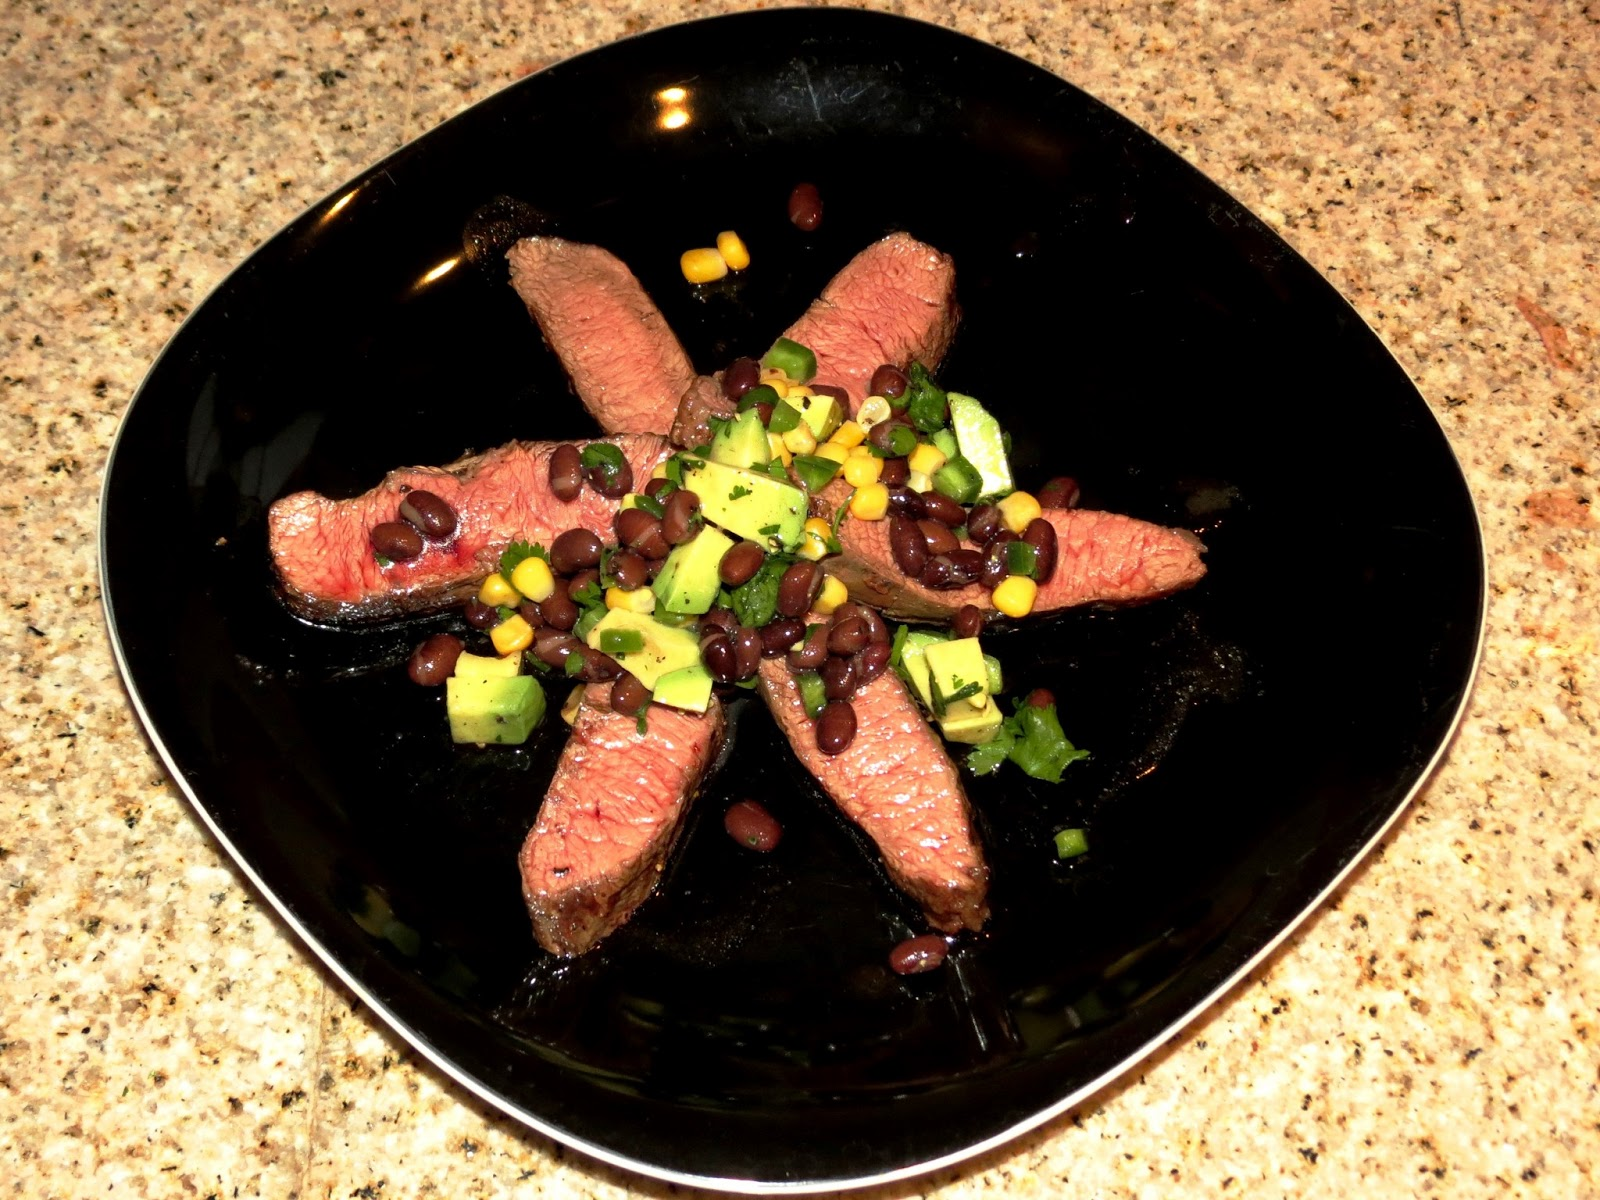 Grilled FlankSteak with Corn, Black Bean, and Avocado Salad